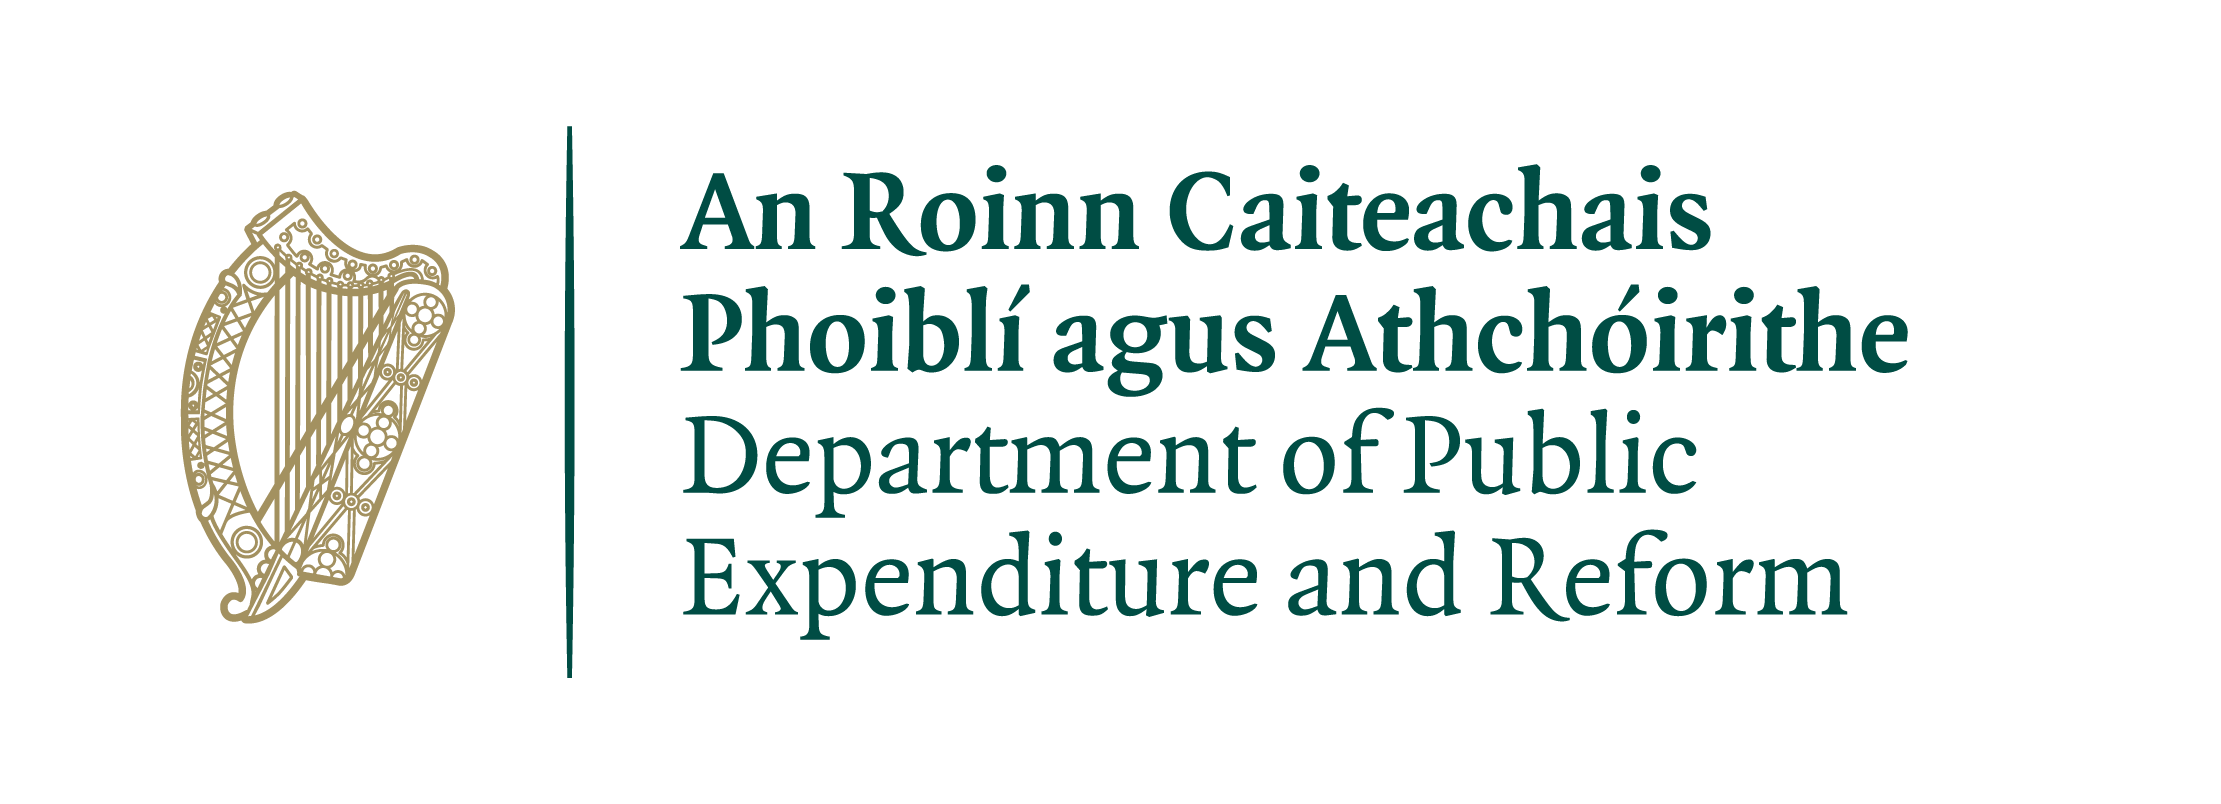 department-of-public-expenditure-and-reform